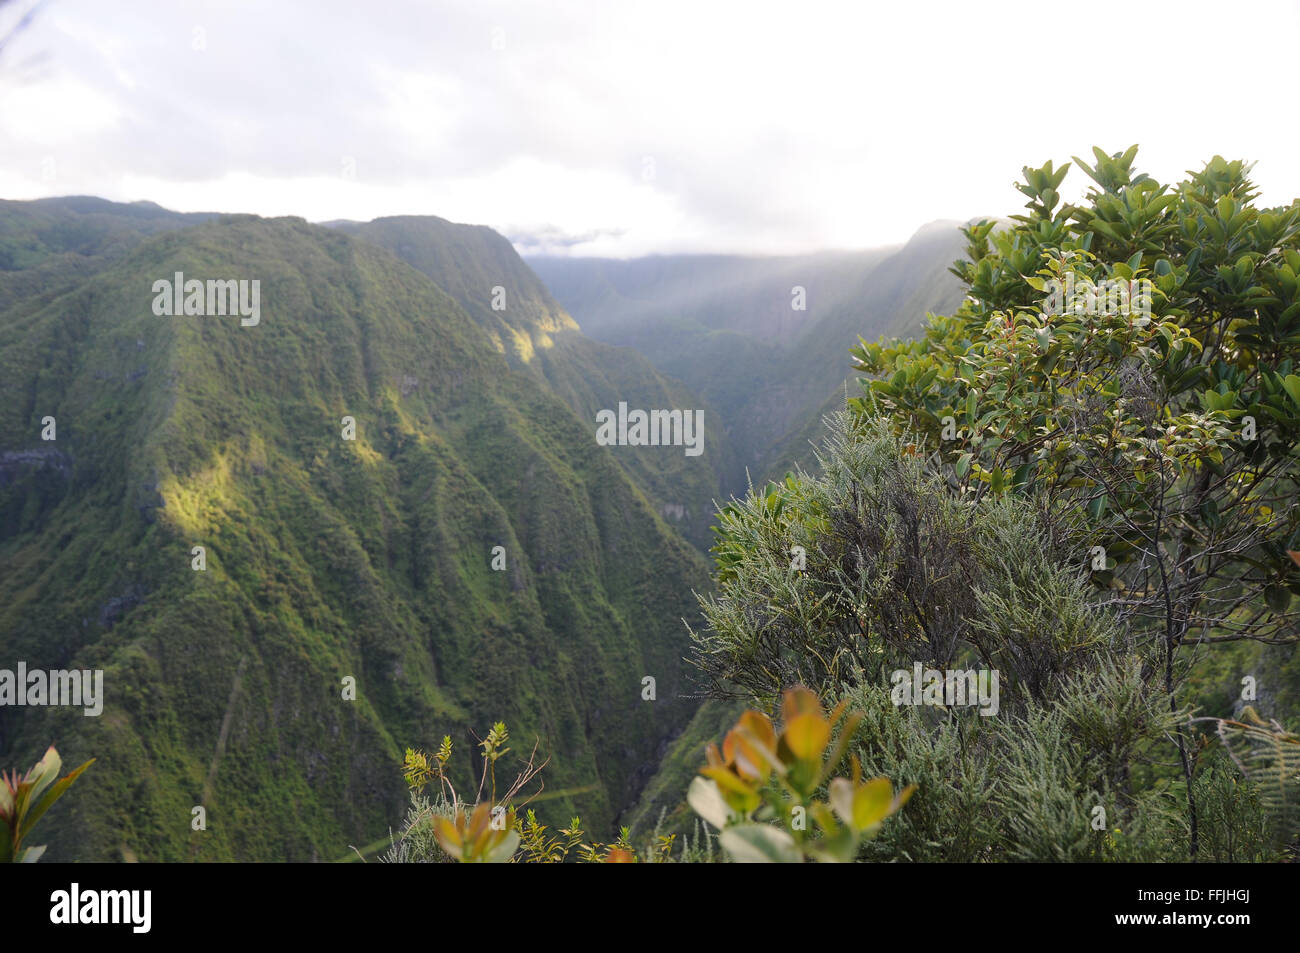 La Fenetre. Viewpoint over a ravine in Reunion. - Stock Image